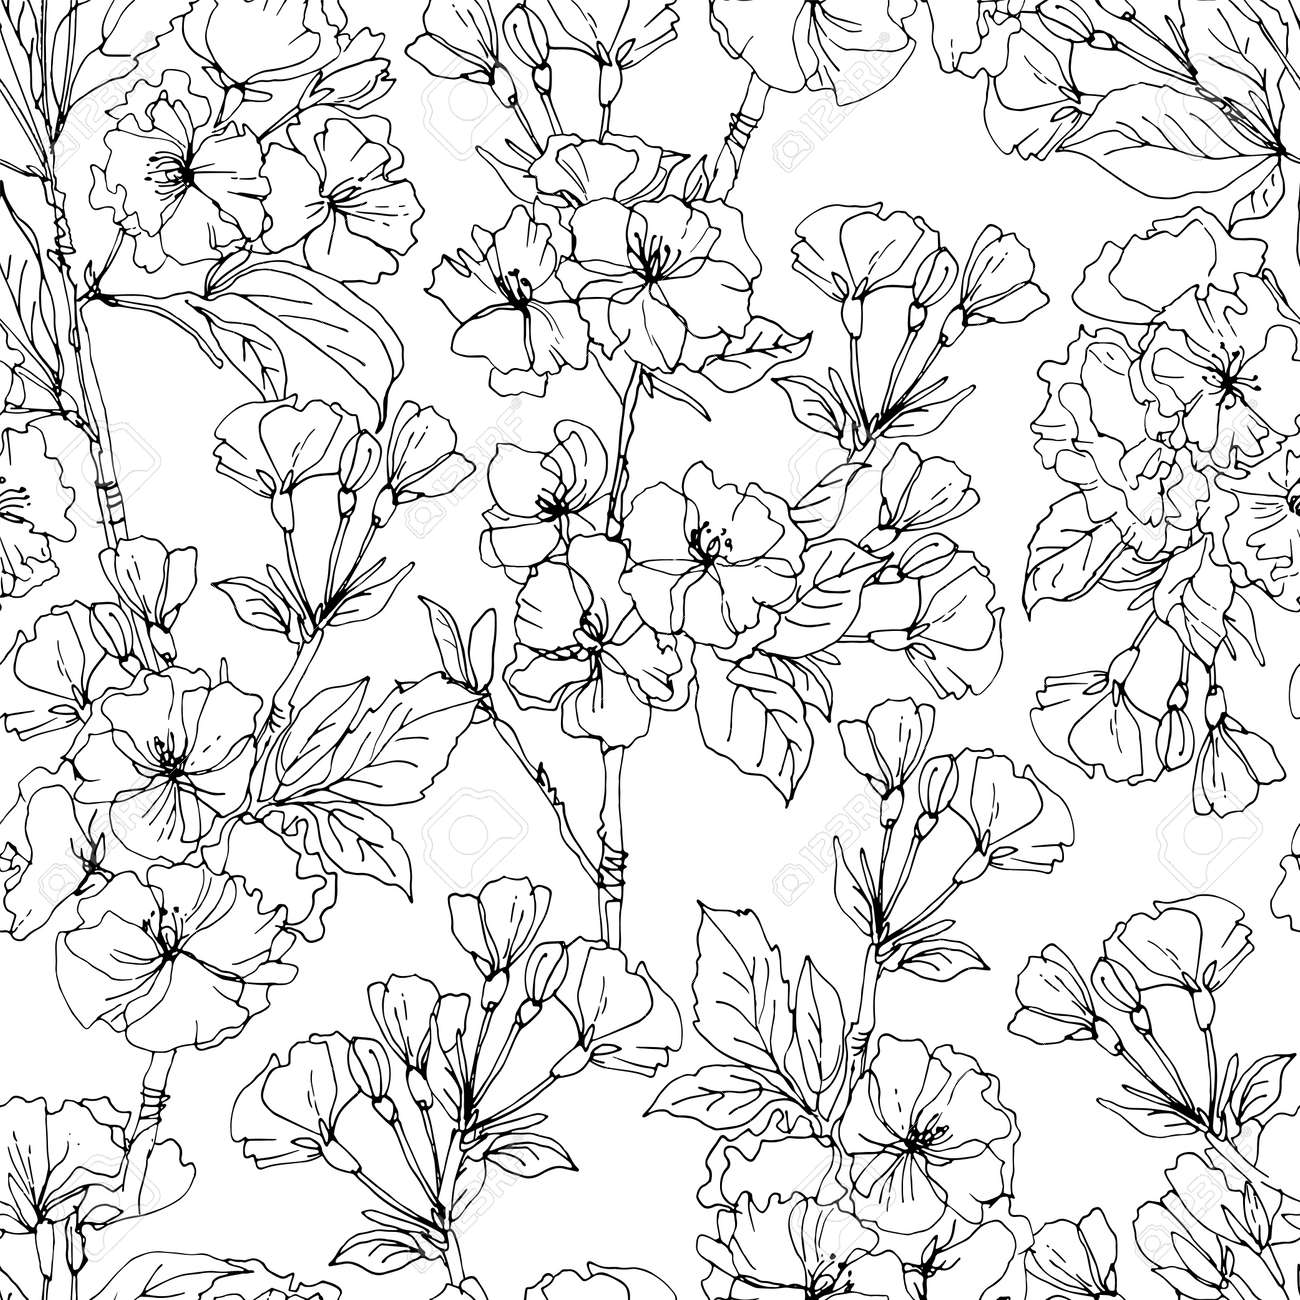 Flower pattern Vector sketch of flowers by line on a white background. - 169914260